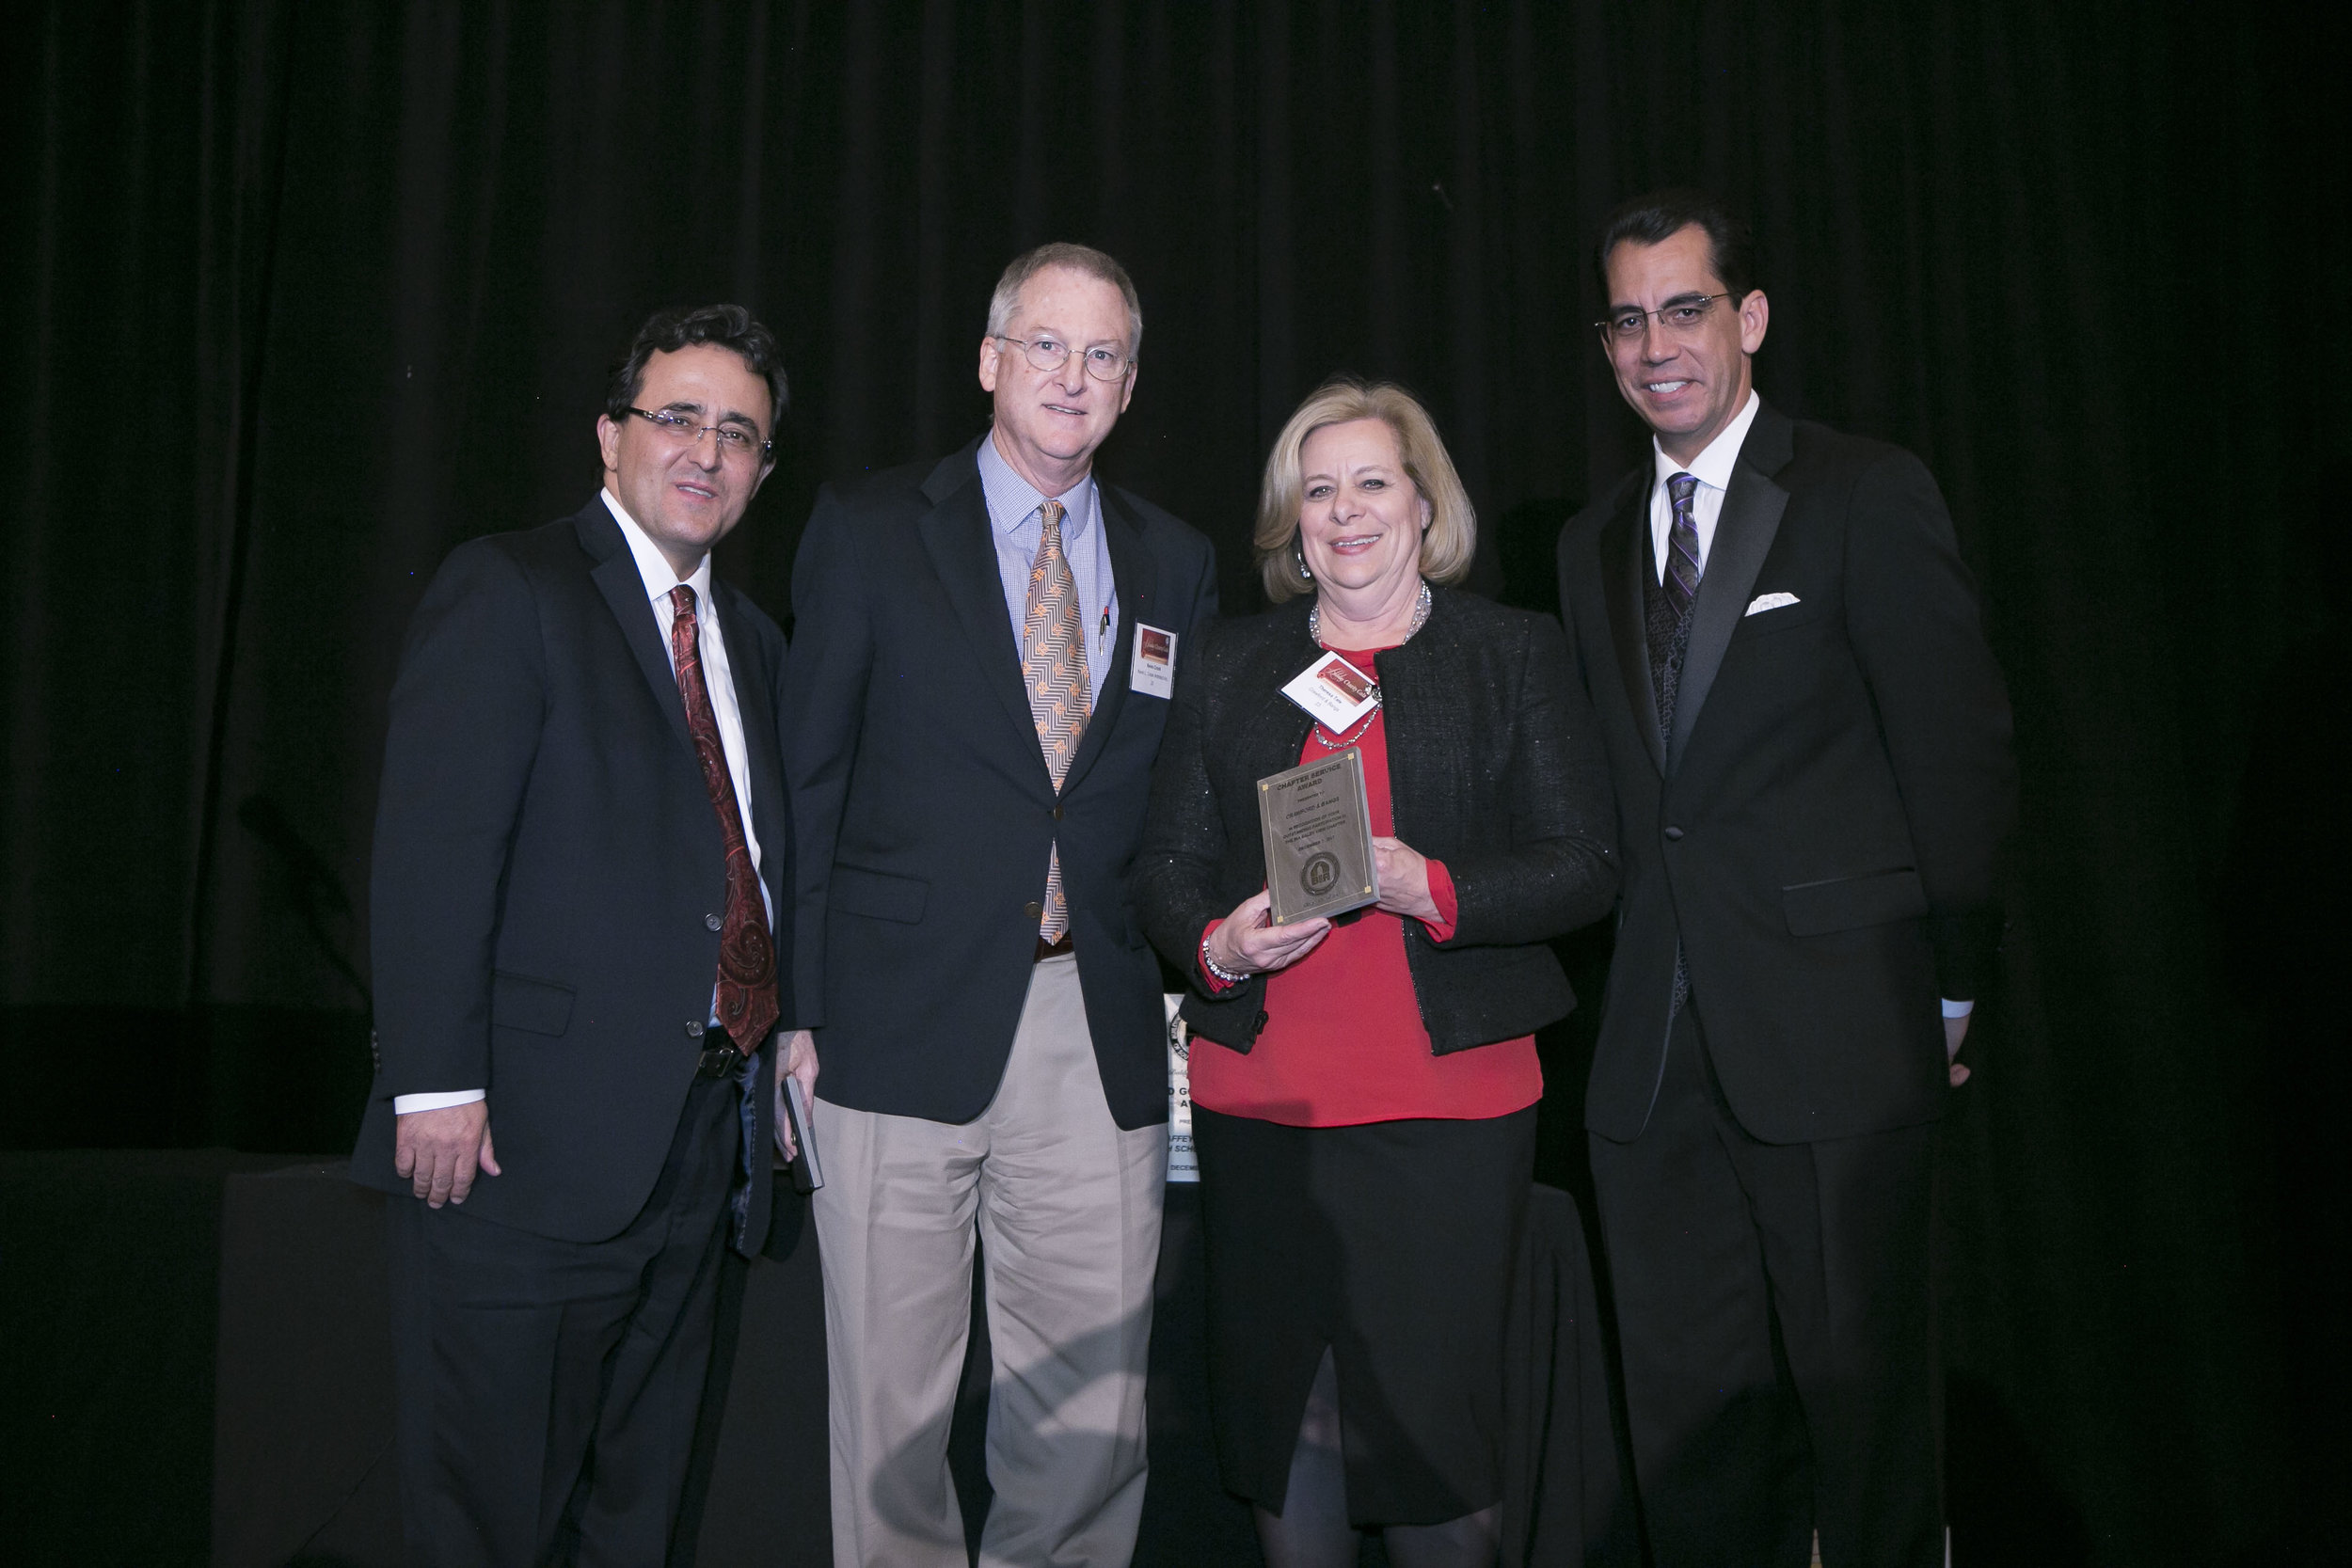 <b>CHAPTER SERVICE AWARD</b><br>Crawford and Bangs & Kevin Crook Architecture